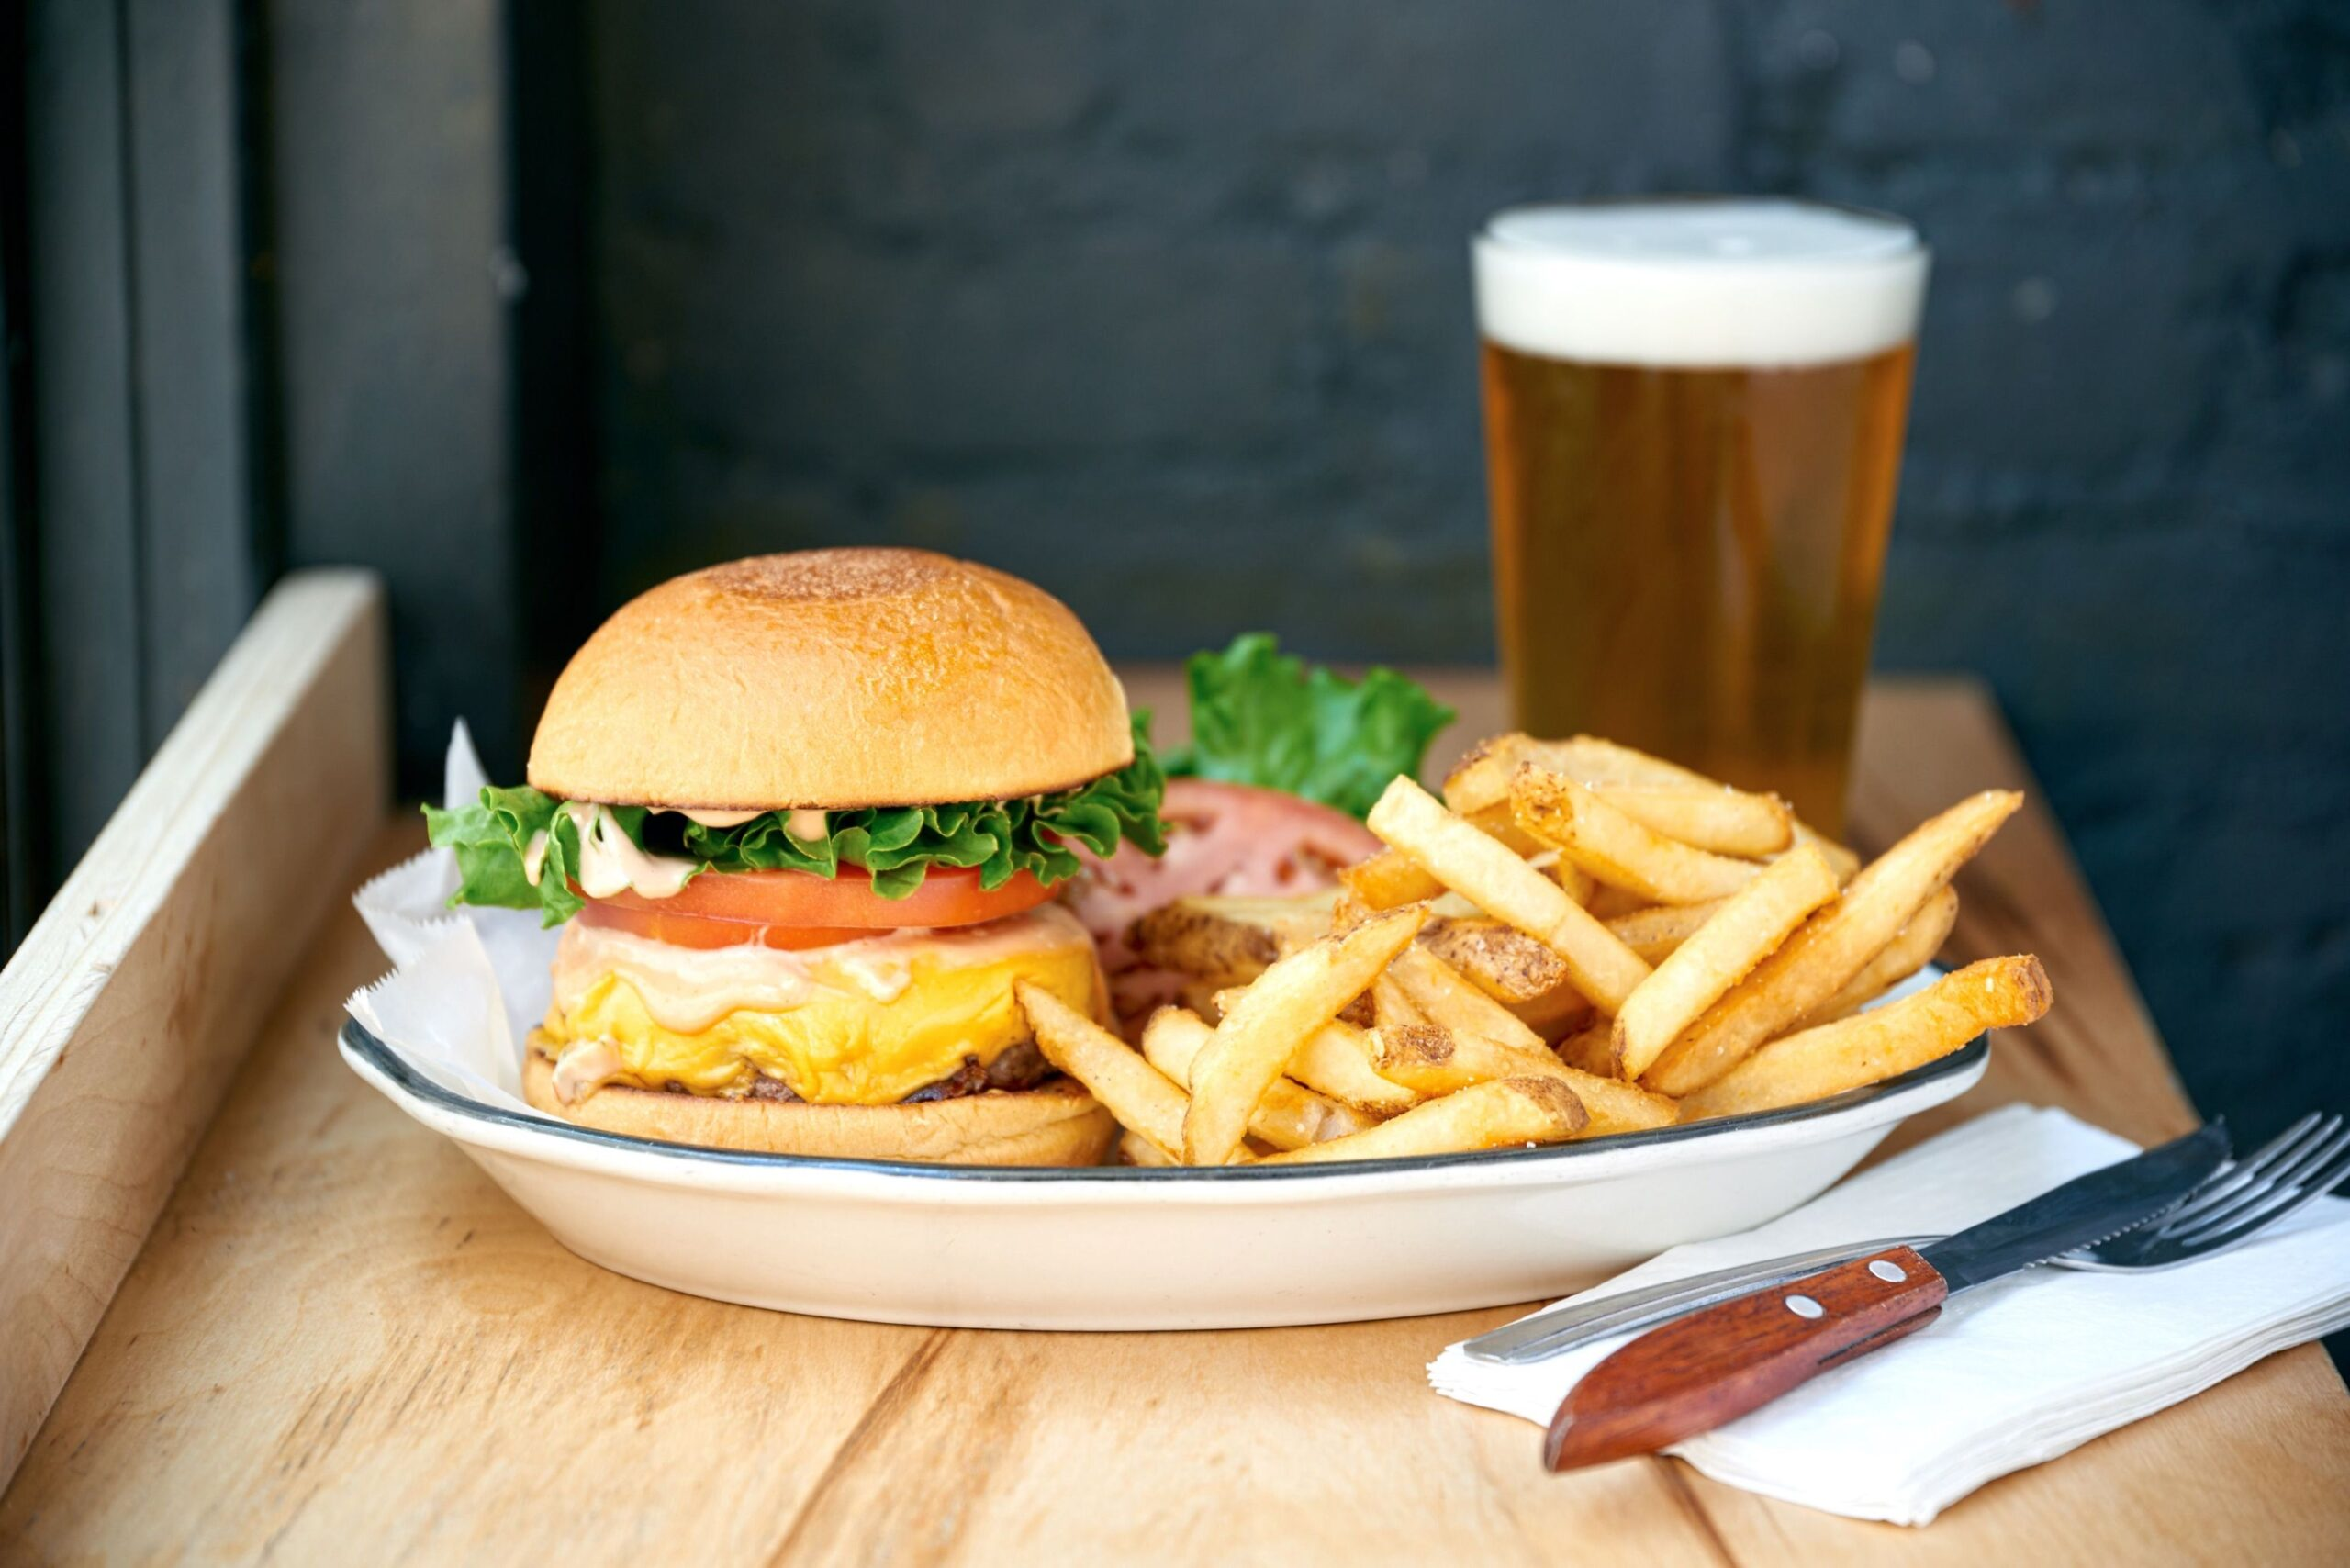 Celebrate National Cheeseburger Day With Free All-American Burgers at Black Tap 3